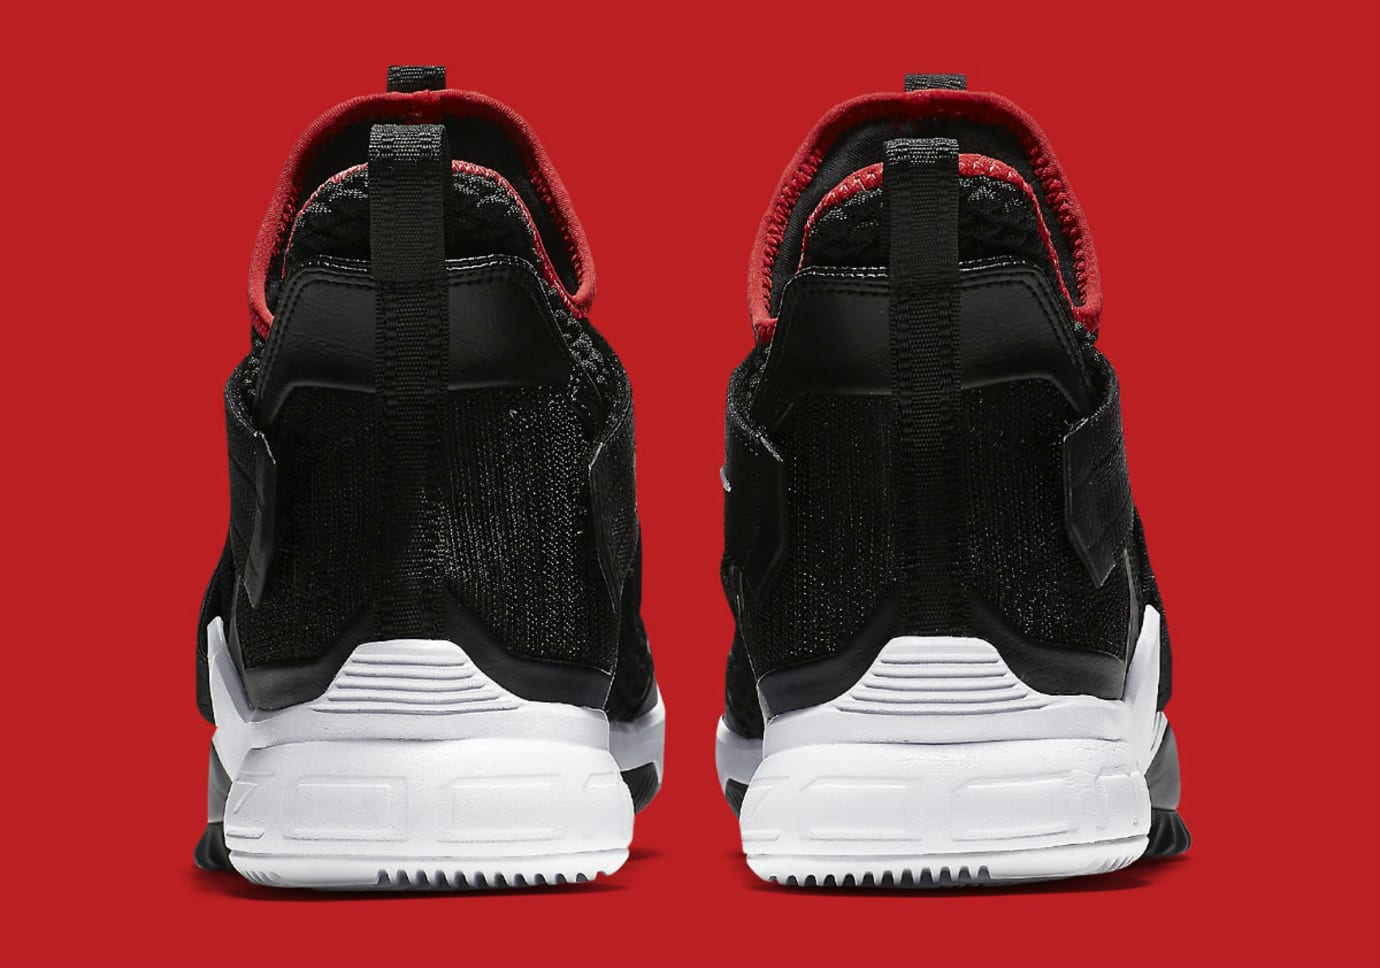 Nike LeBron Soldier 12 Bred Release Date AO4053-001 Heel